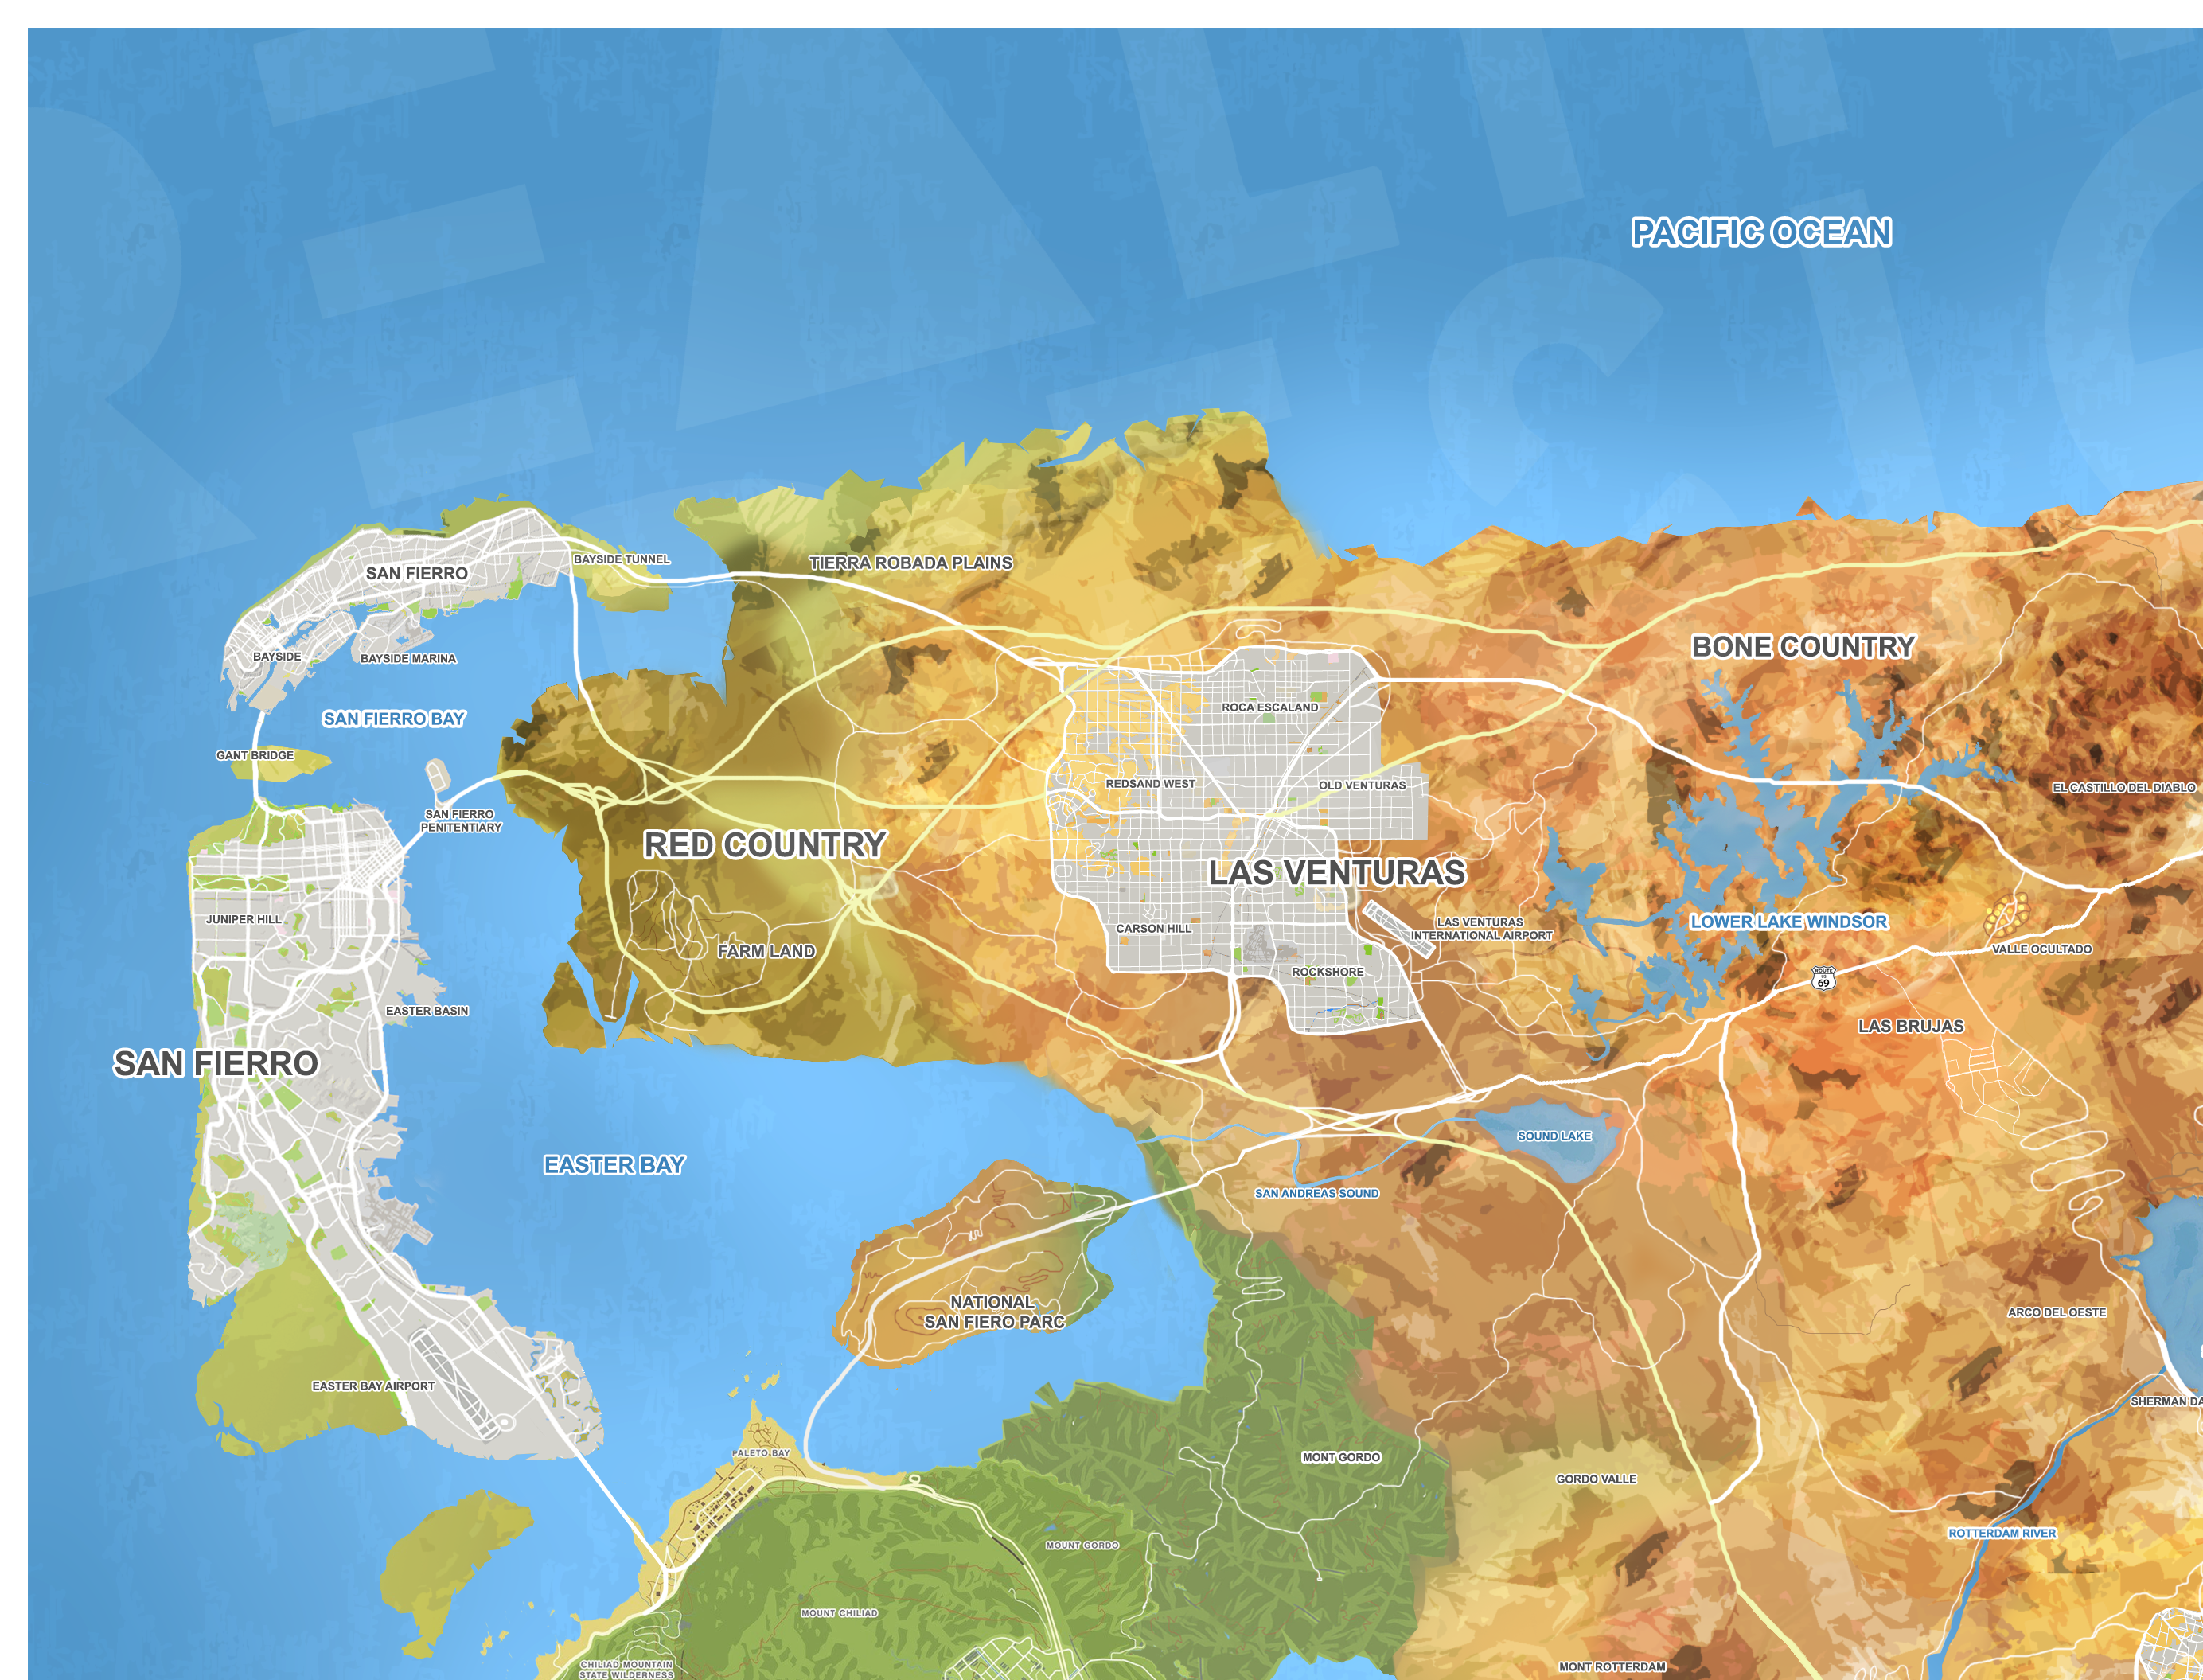 GTA 6' Leaks Inspire Fan-Made Maps Bringing the Rumored Game